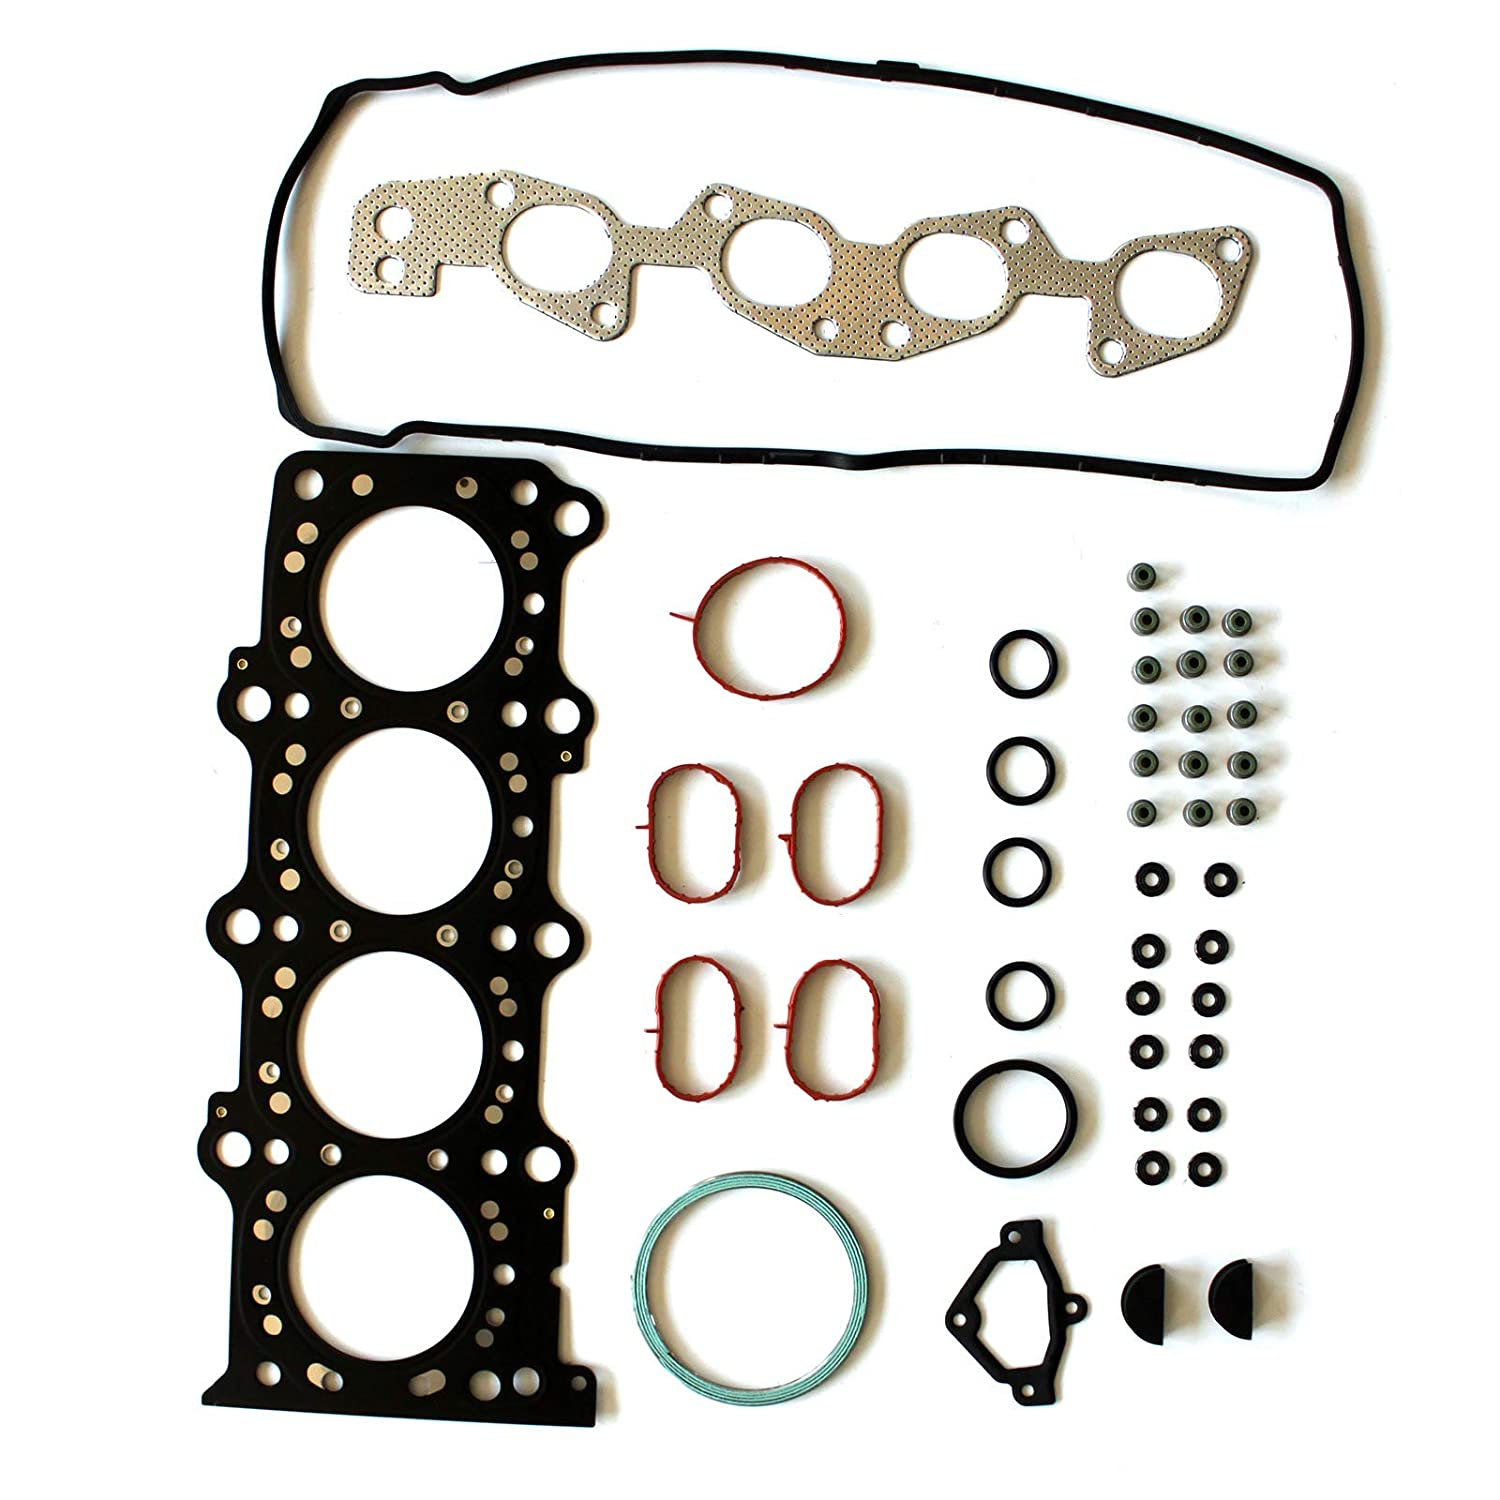 OCPTY Head Gasket Set fits 07 08 09 Suzuki SX4 Gaskets Kit Cylinder Head Gasket Set